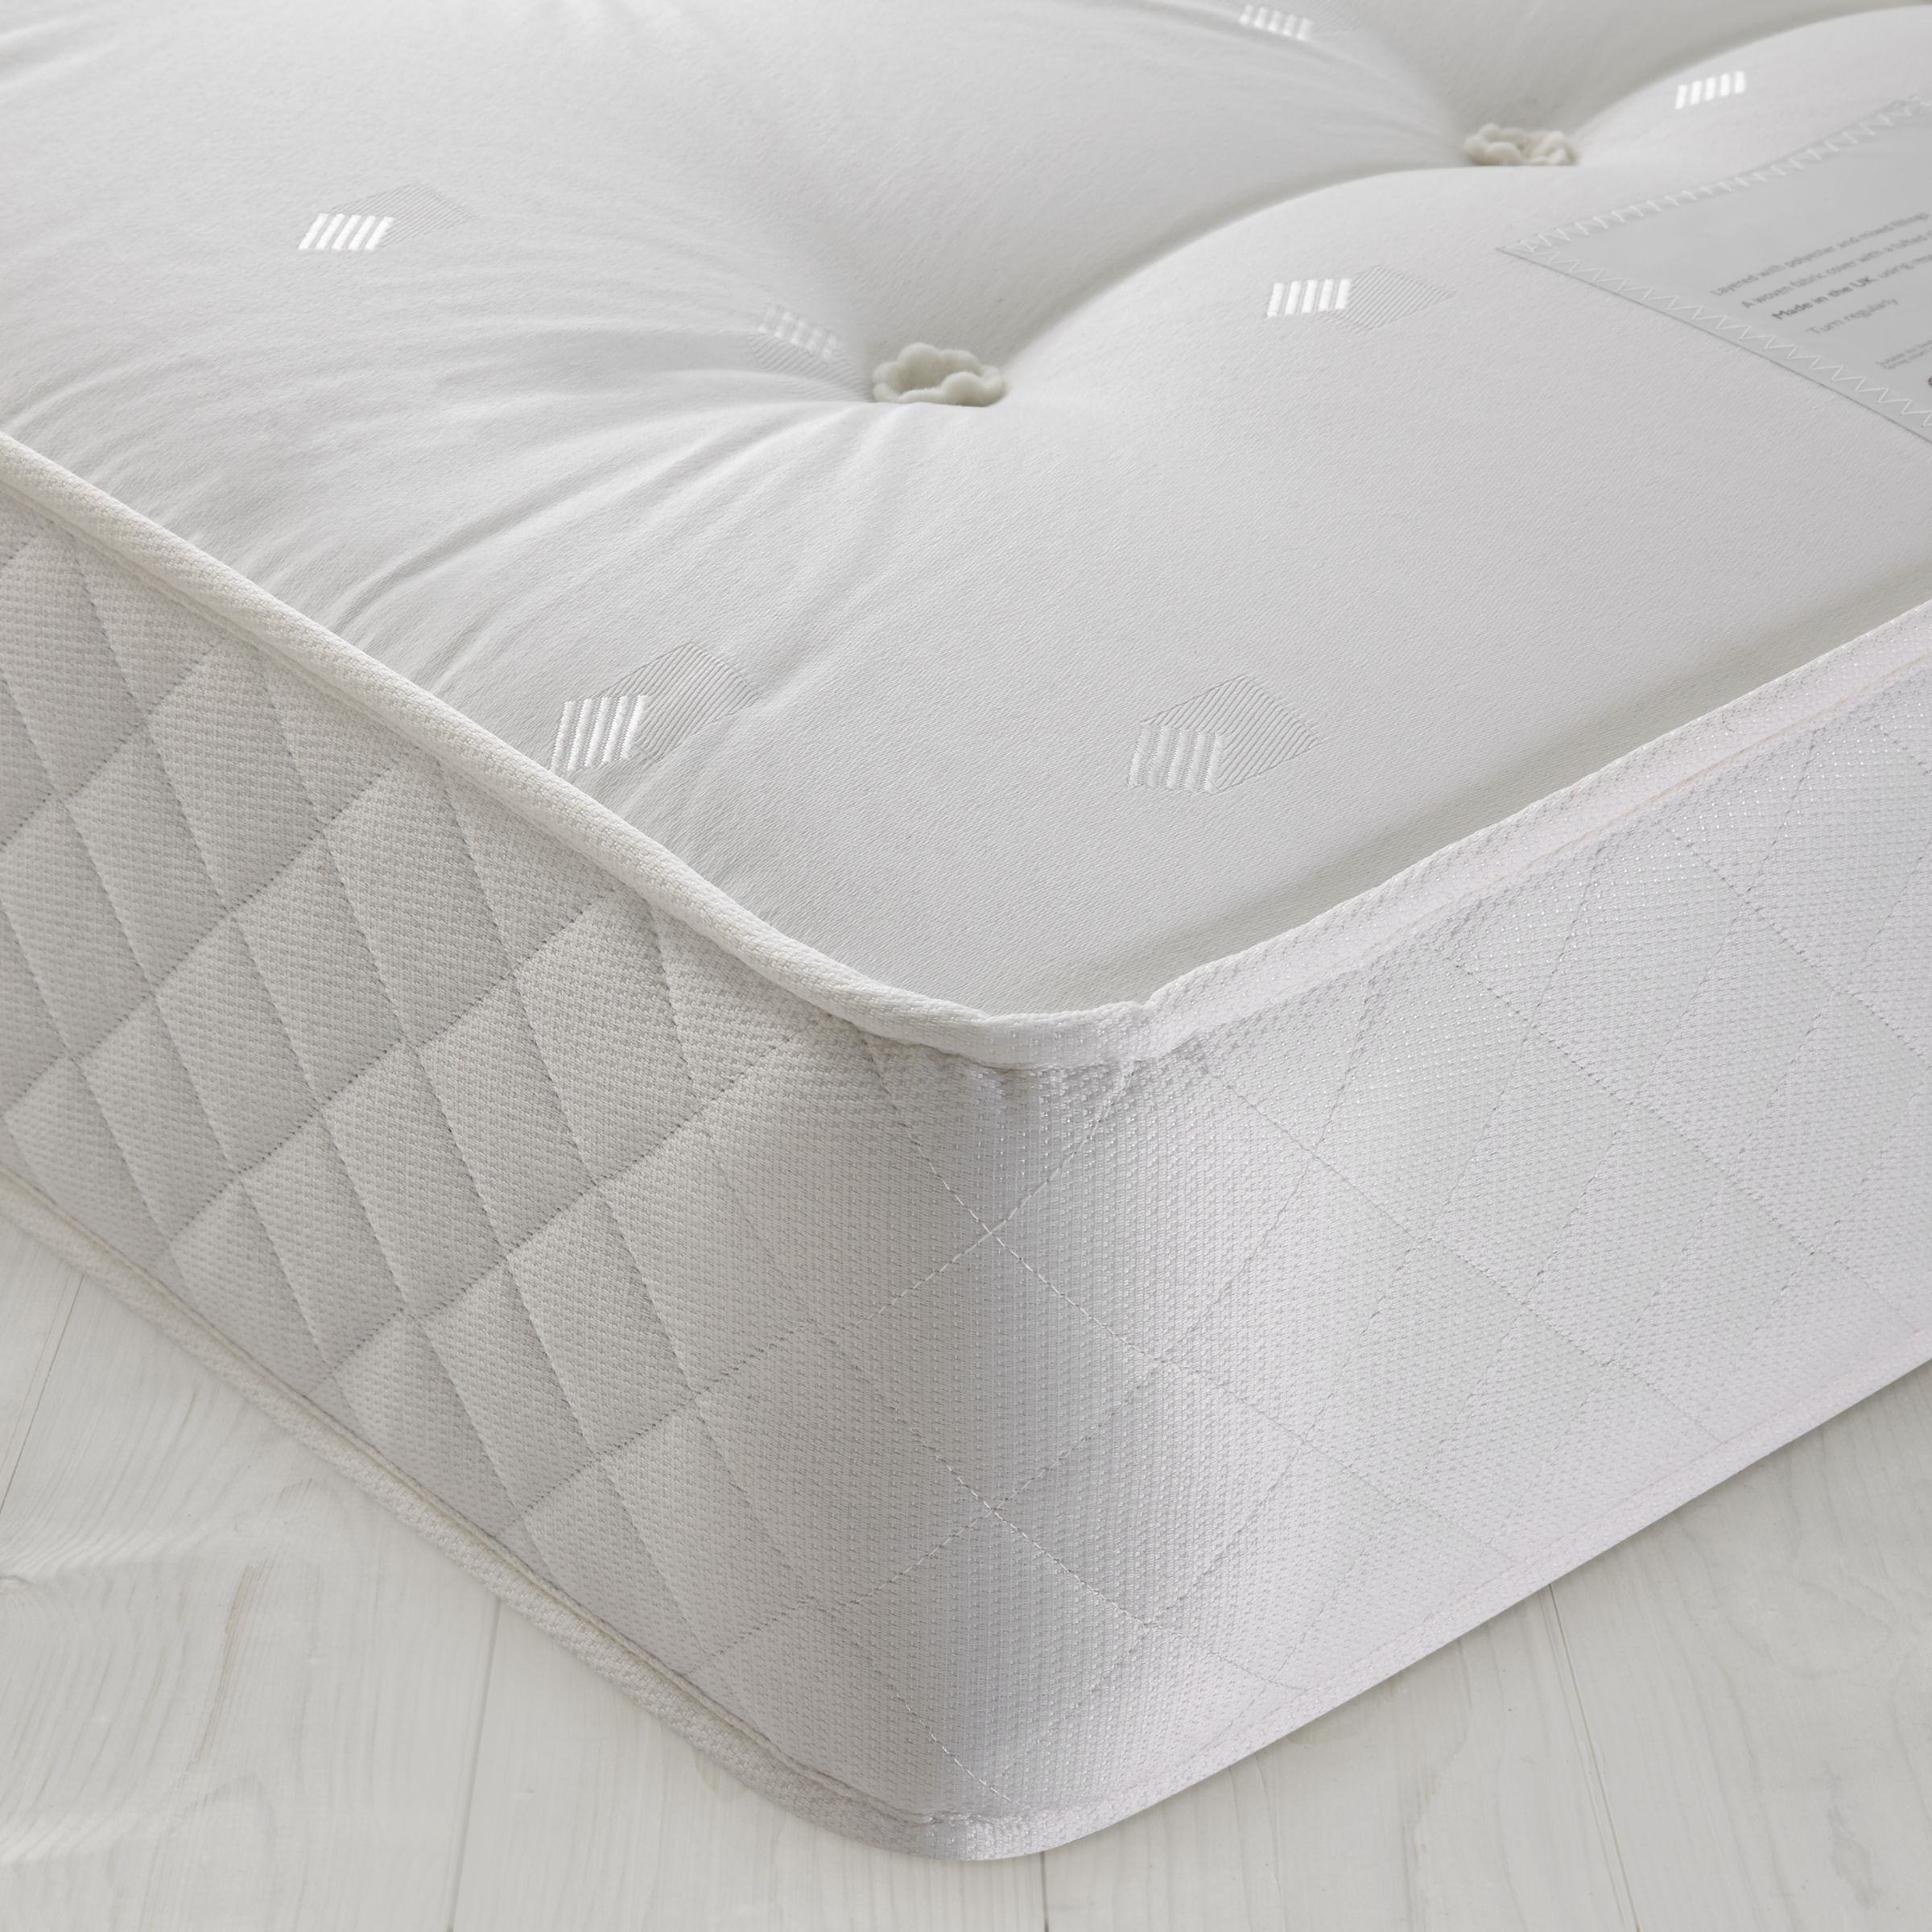 John Lewis Response 720 Firm Mattress, Small Double